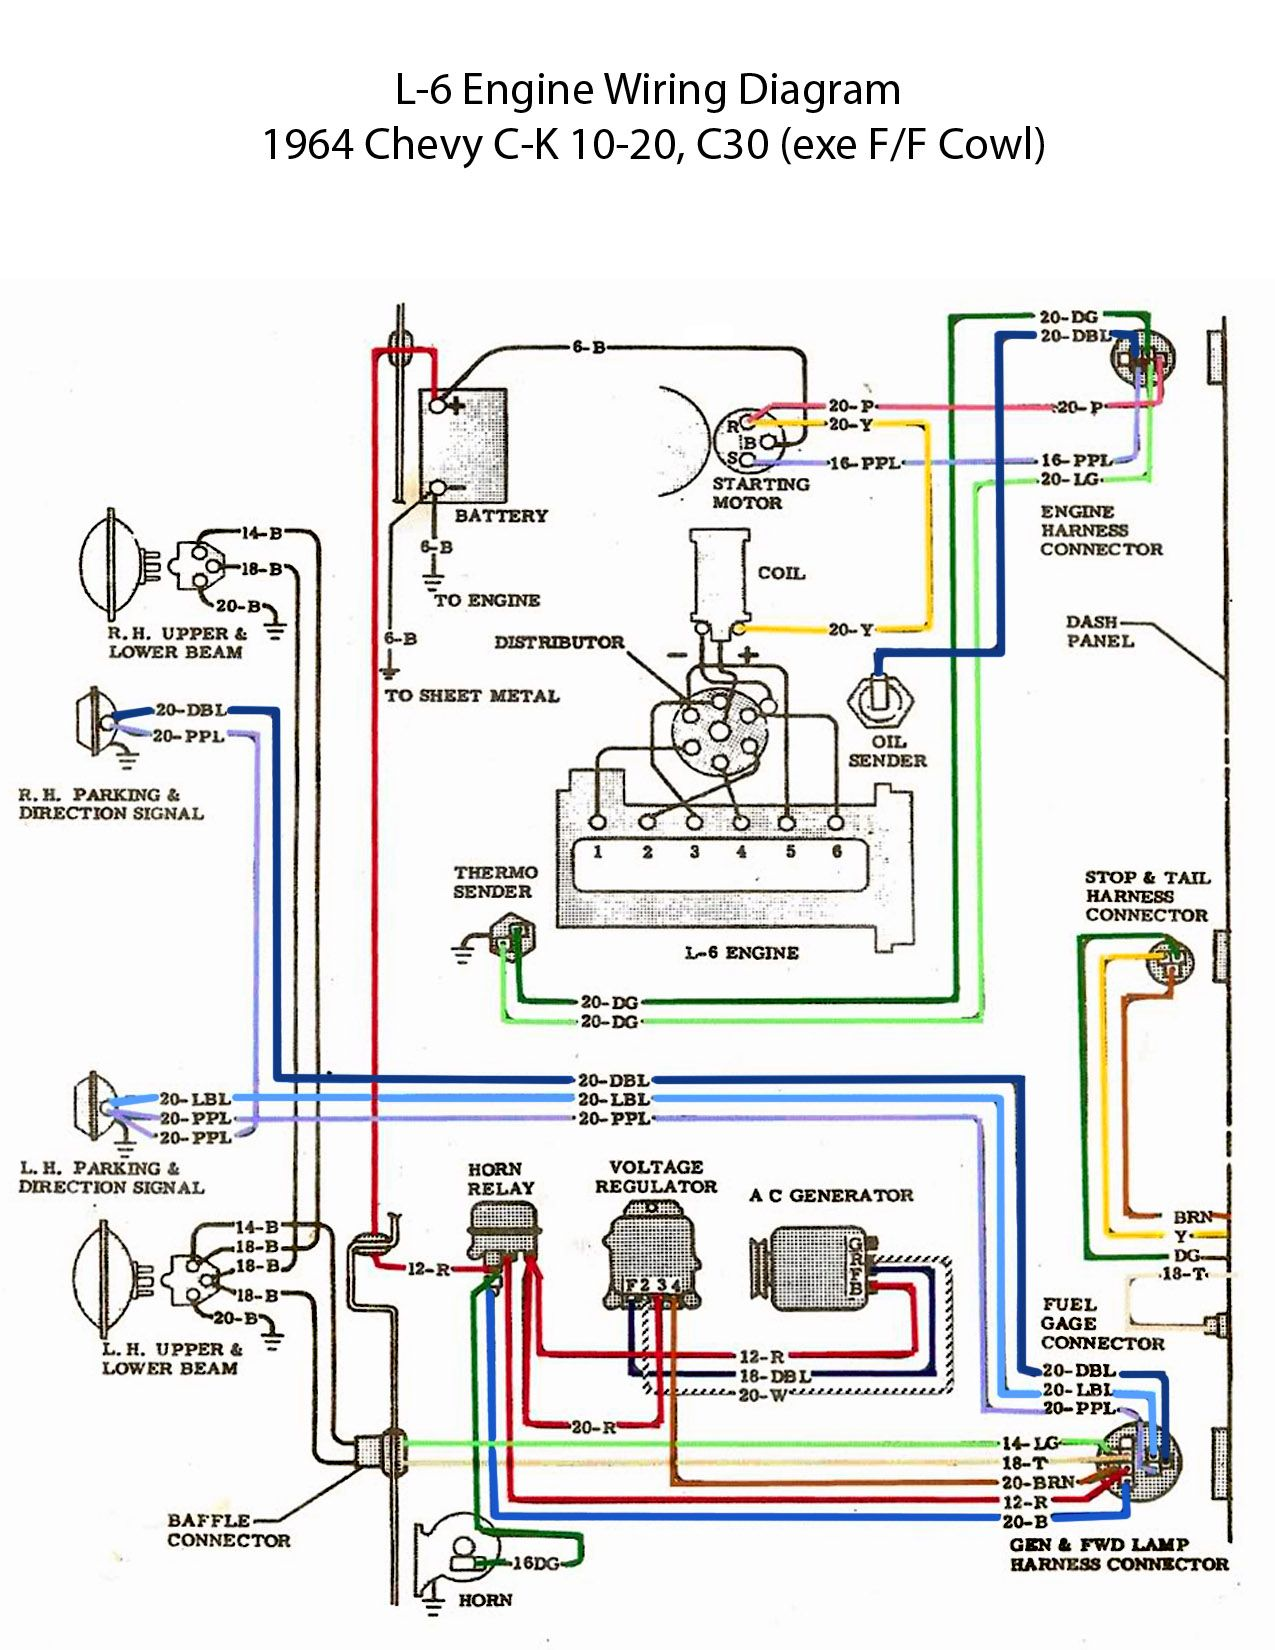 electric l engine wiring diagram s chevy c wiring electric l 6 engine wiring diagram